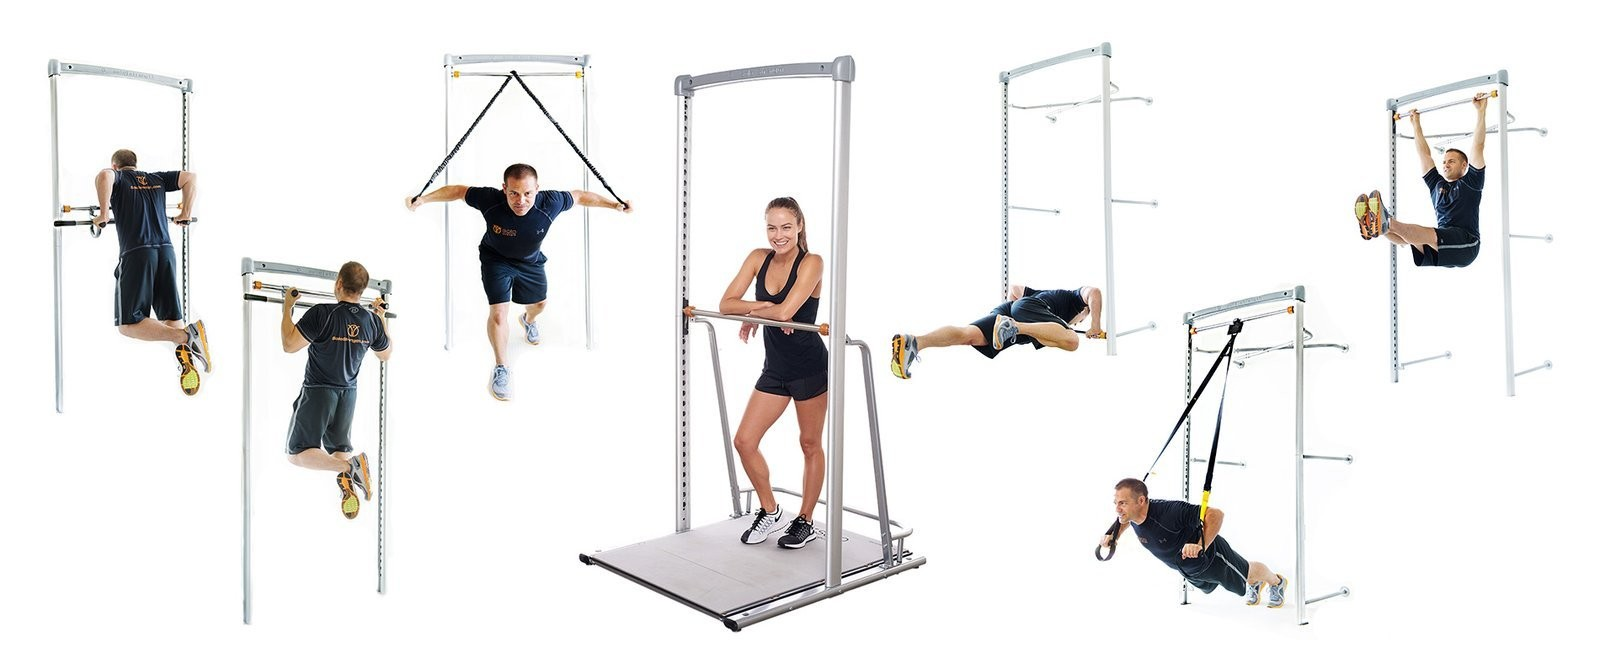 solostrength freestanding bodyweight exercise training stations